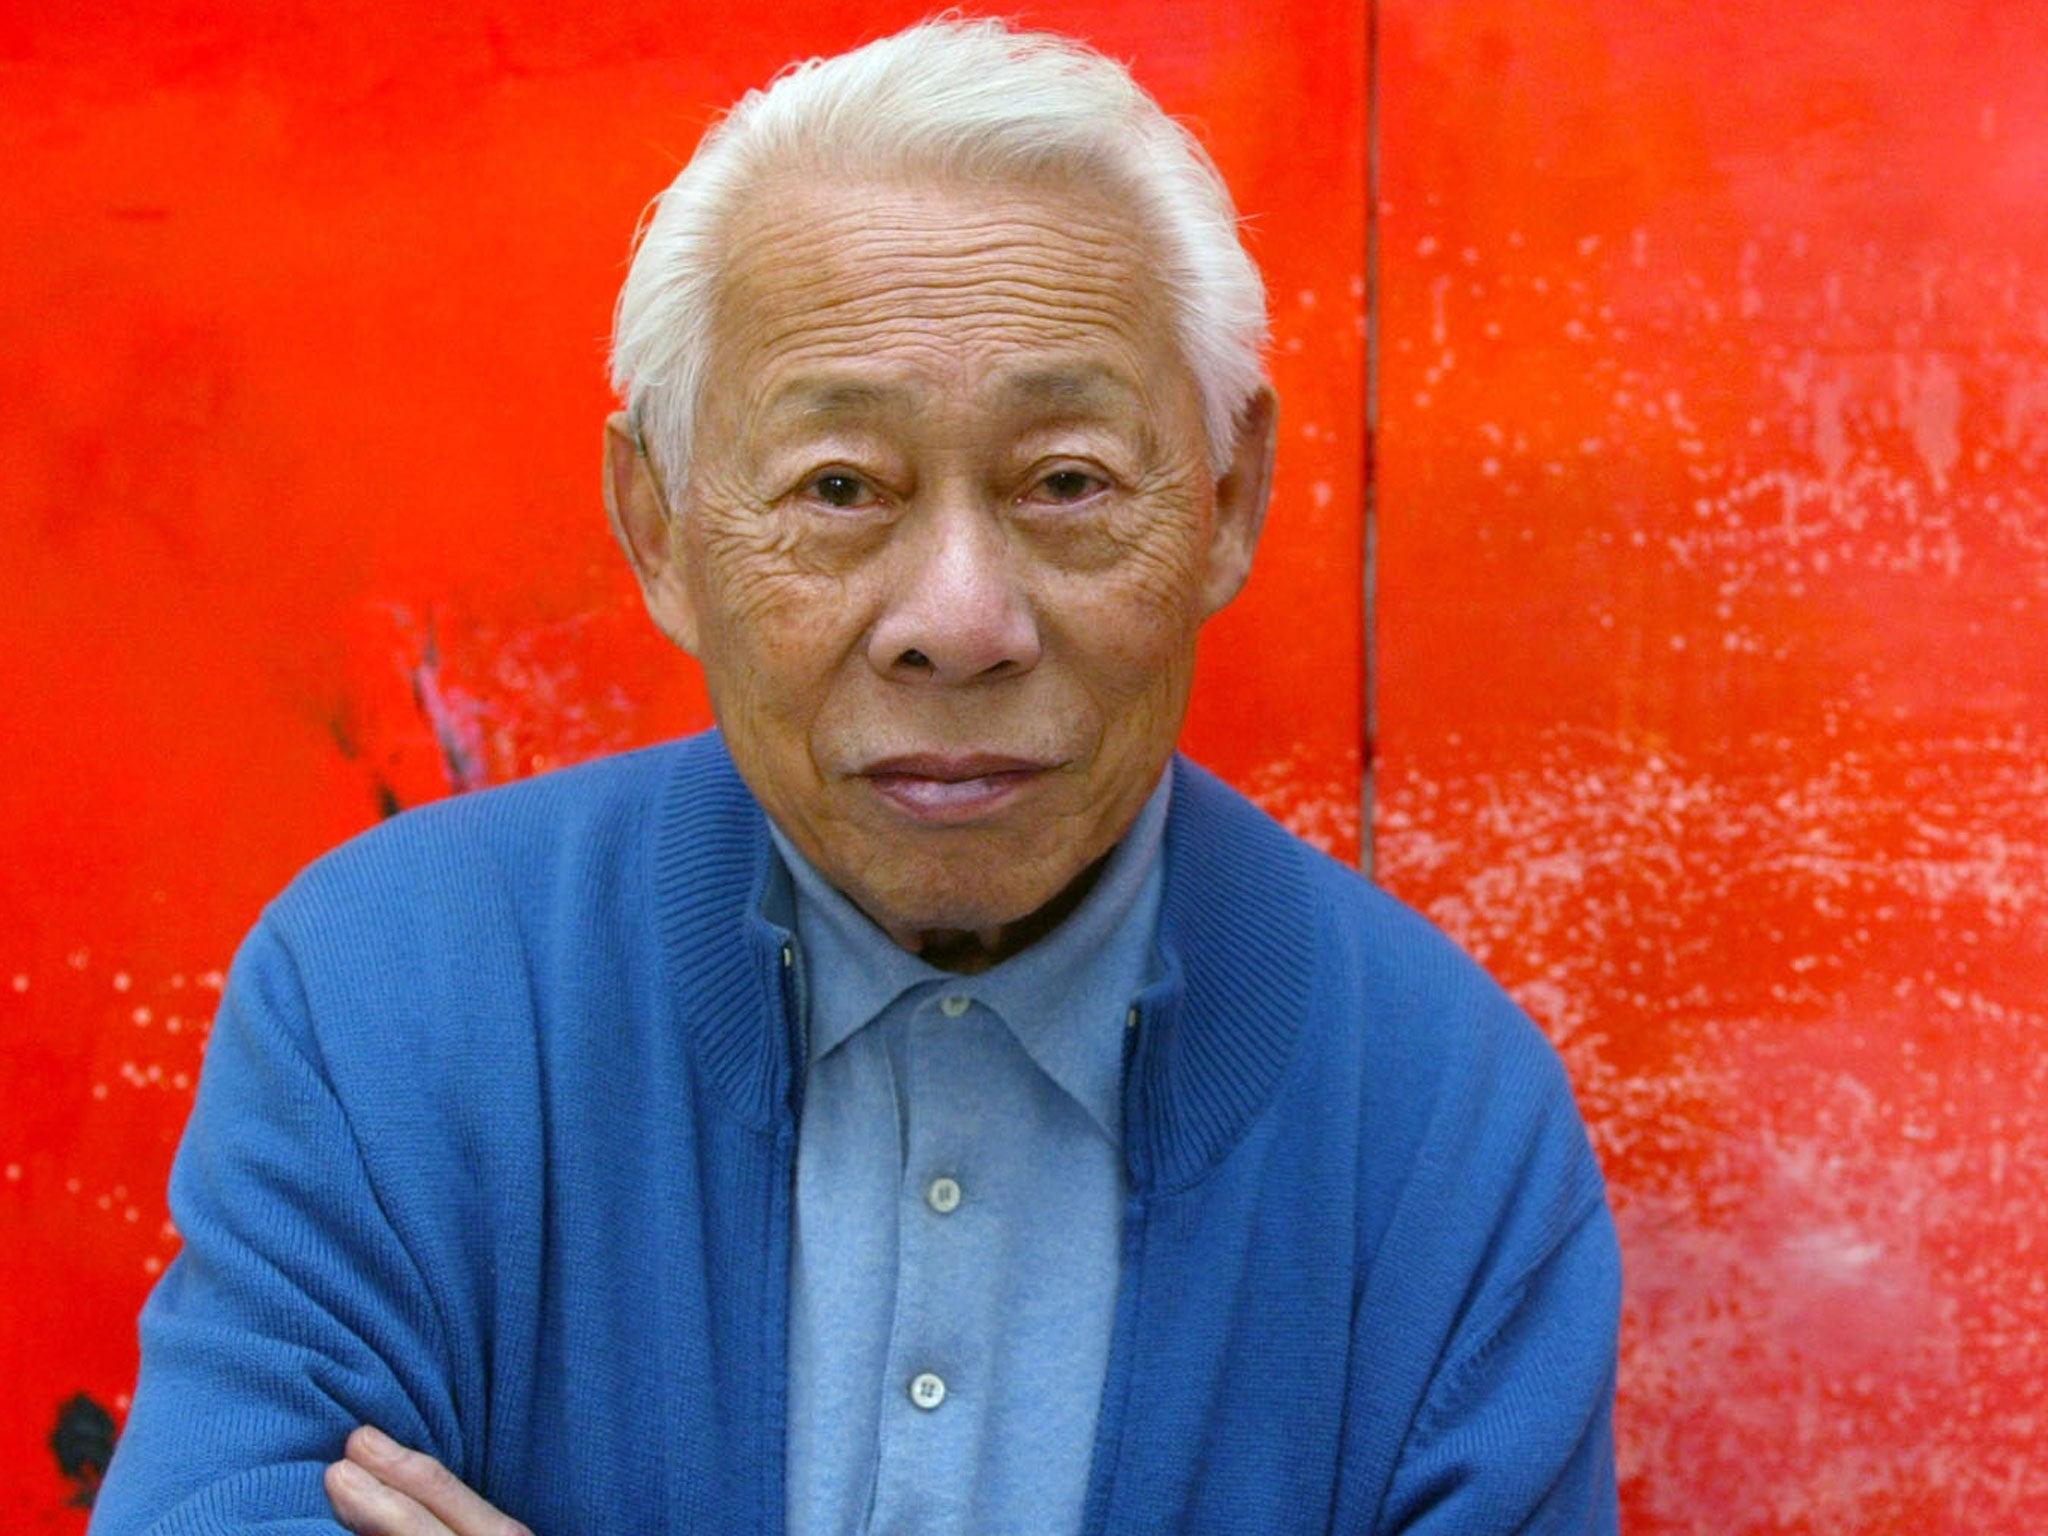 Zao Wou-Ki: Artist whose work combined Oriental landscapes and Western abstraction | The Independent